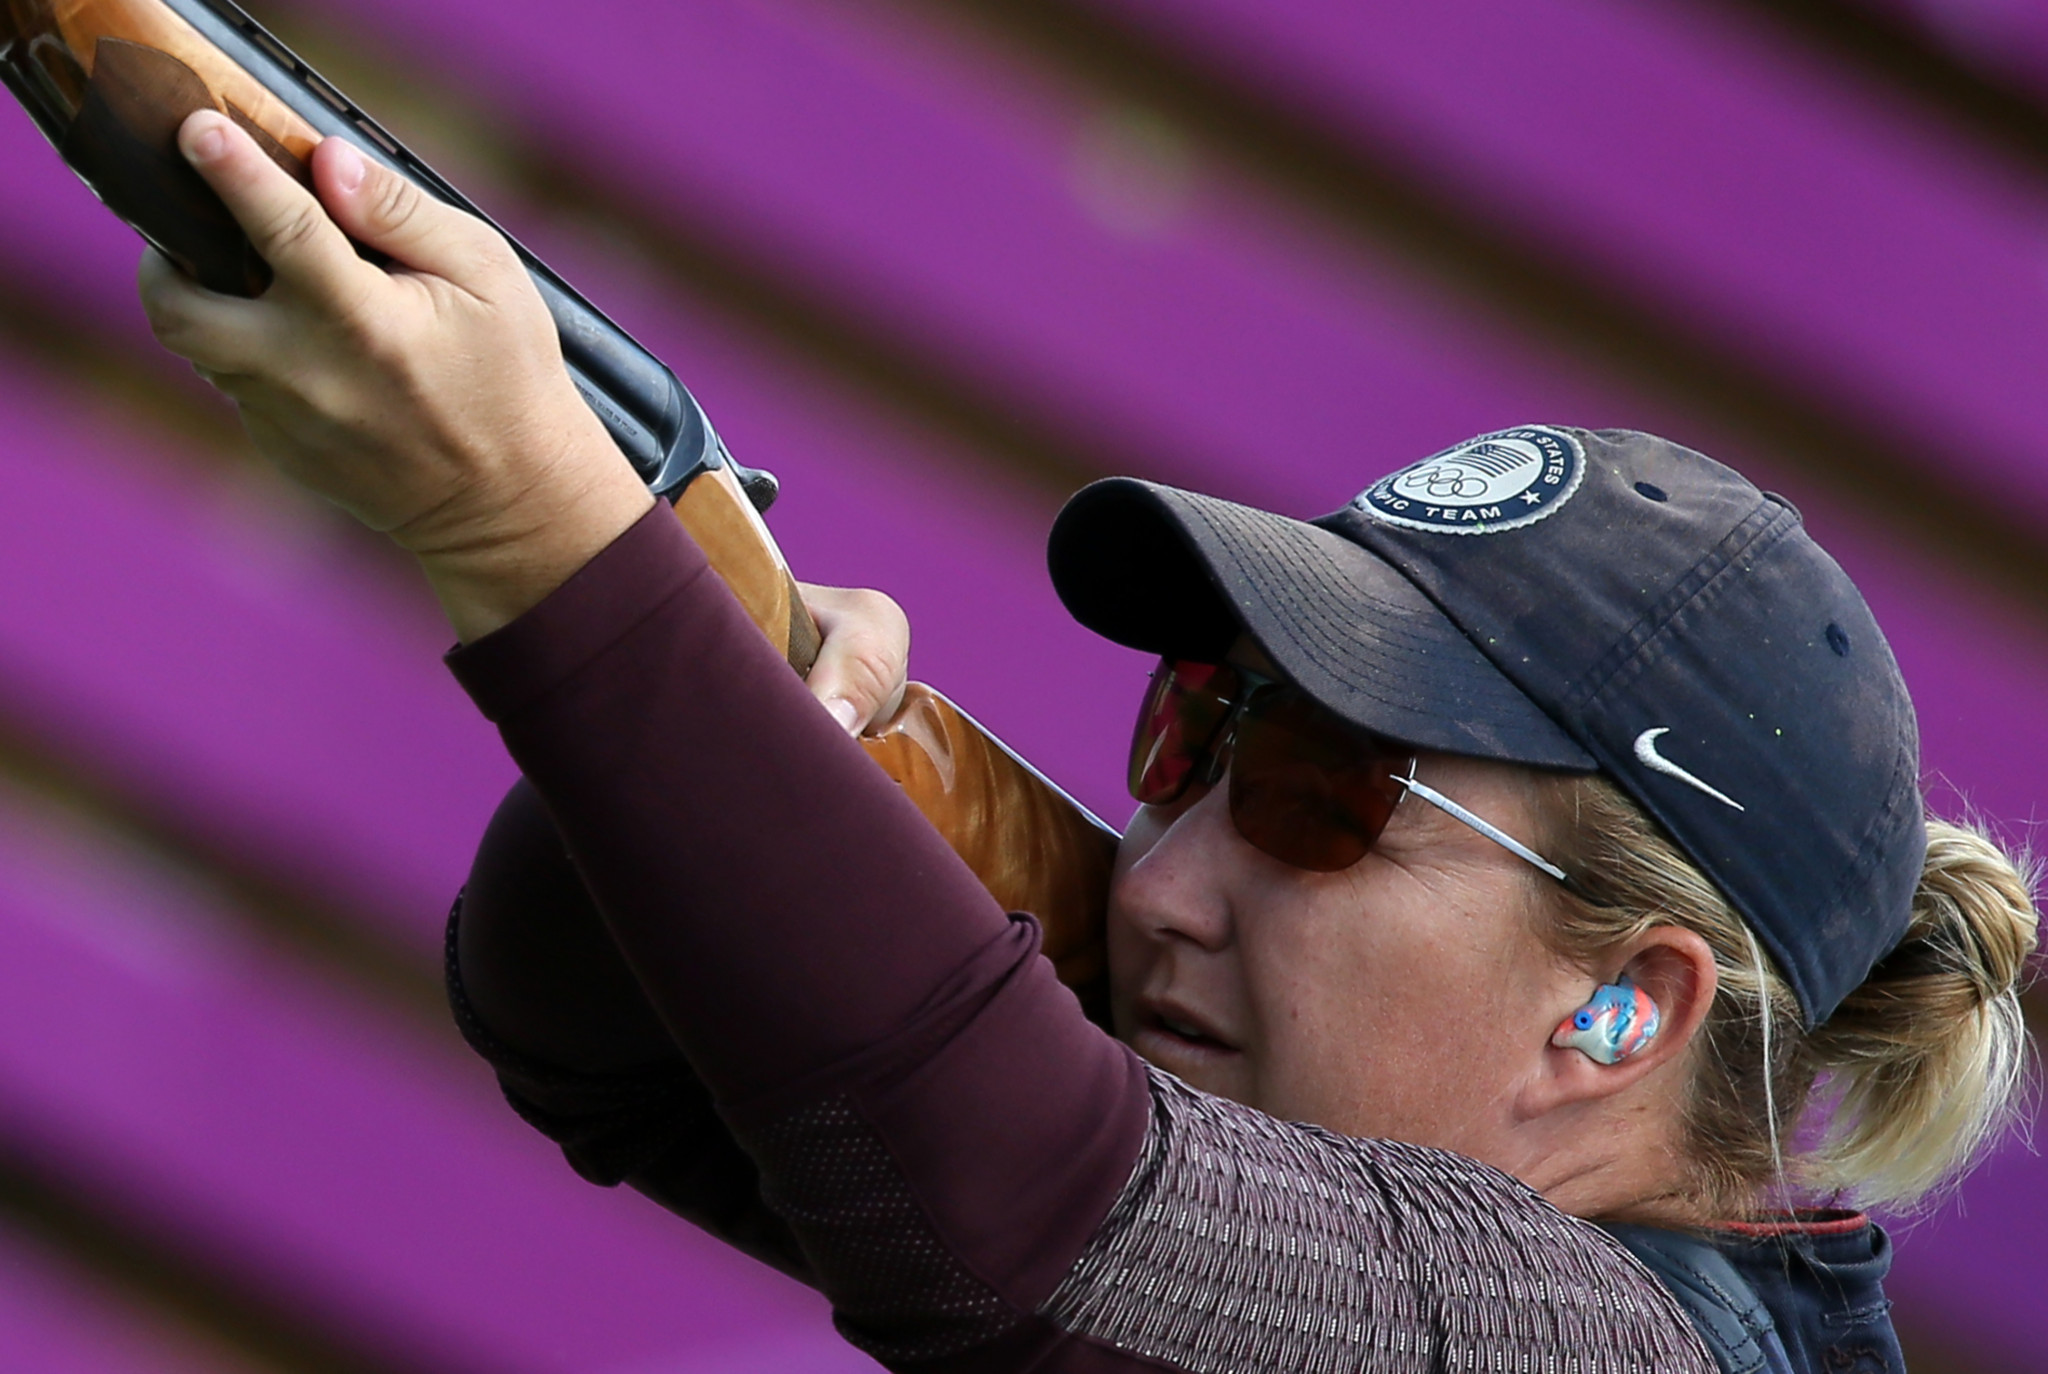 Rhode ready to strike for gold in women's skeet at ISSF Shotgun World Championship